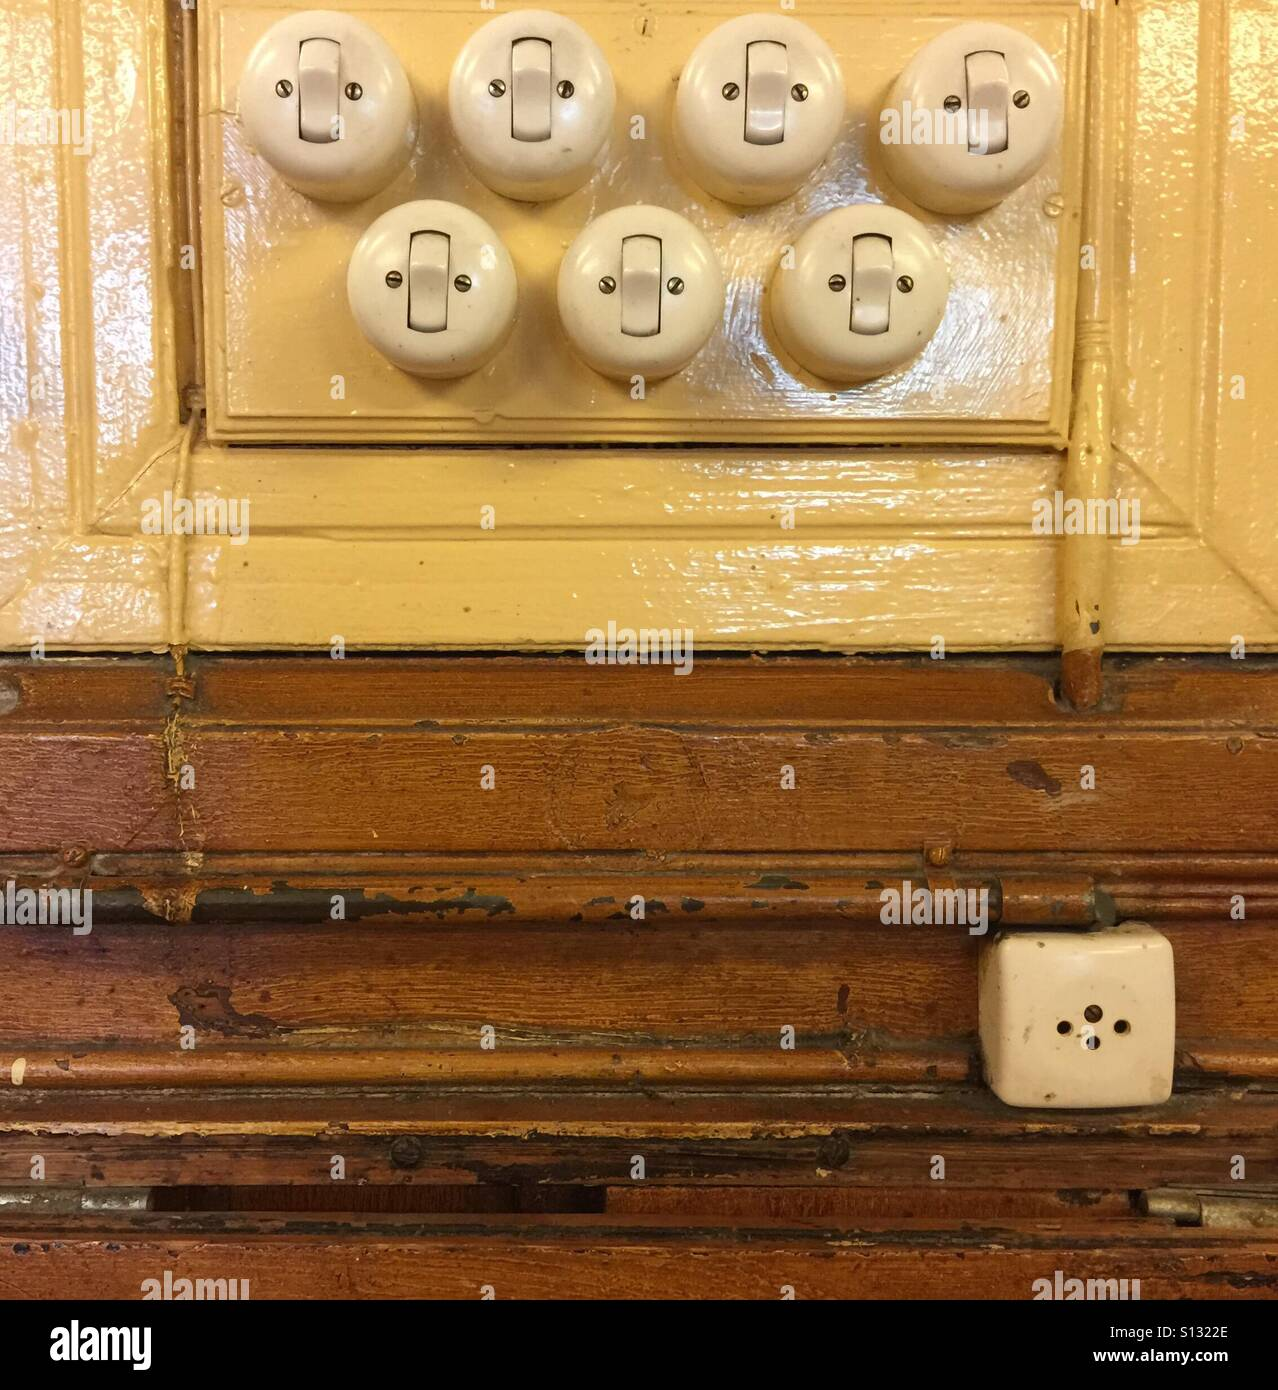 Old Light Switches Wall Stockfotos & Old Light Switches Wall Bilder ...